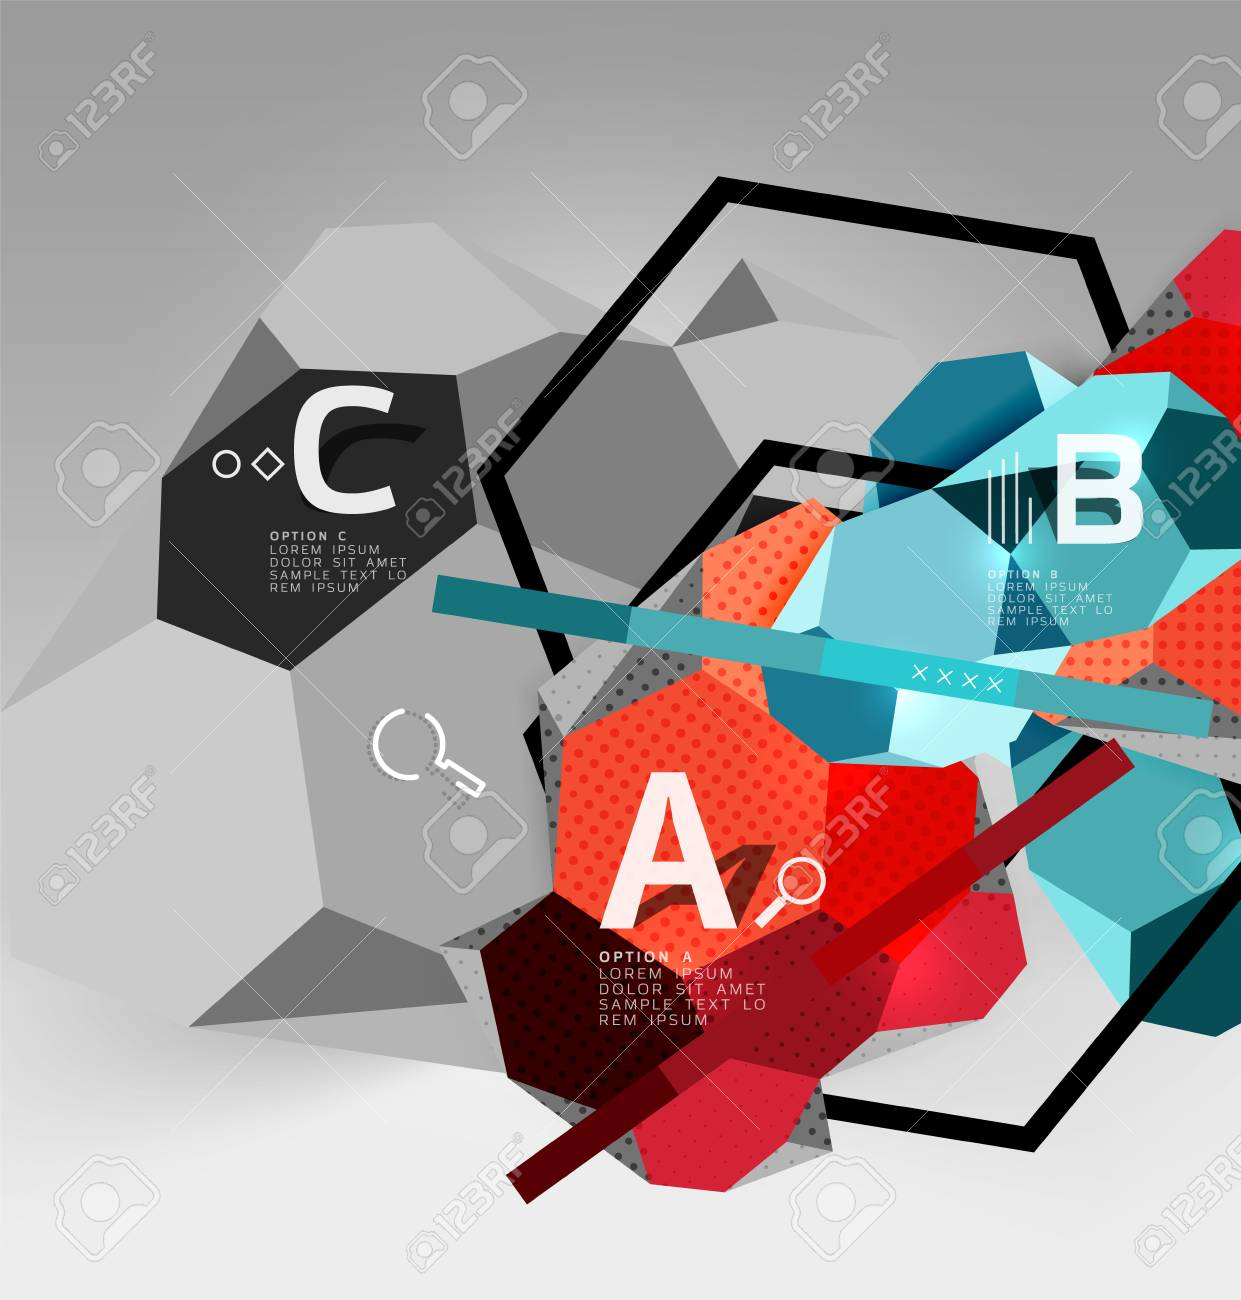 3d hexagon geometric composition geometric digital abstract